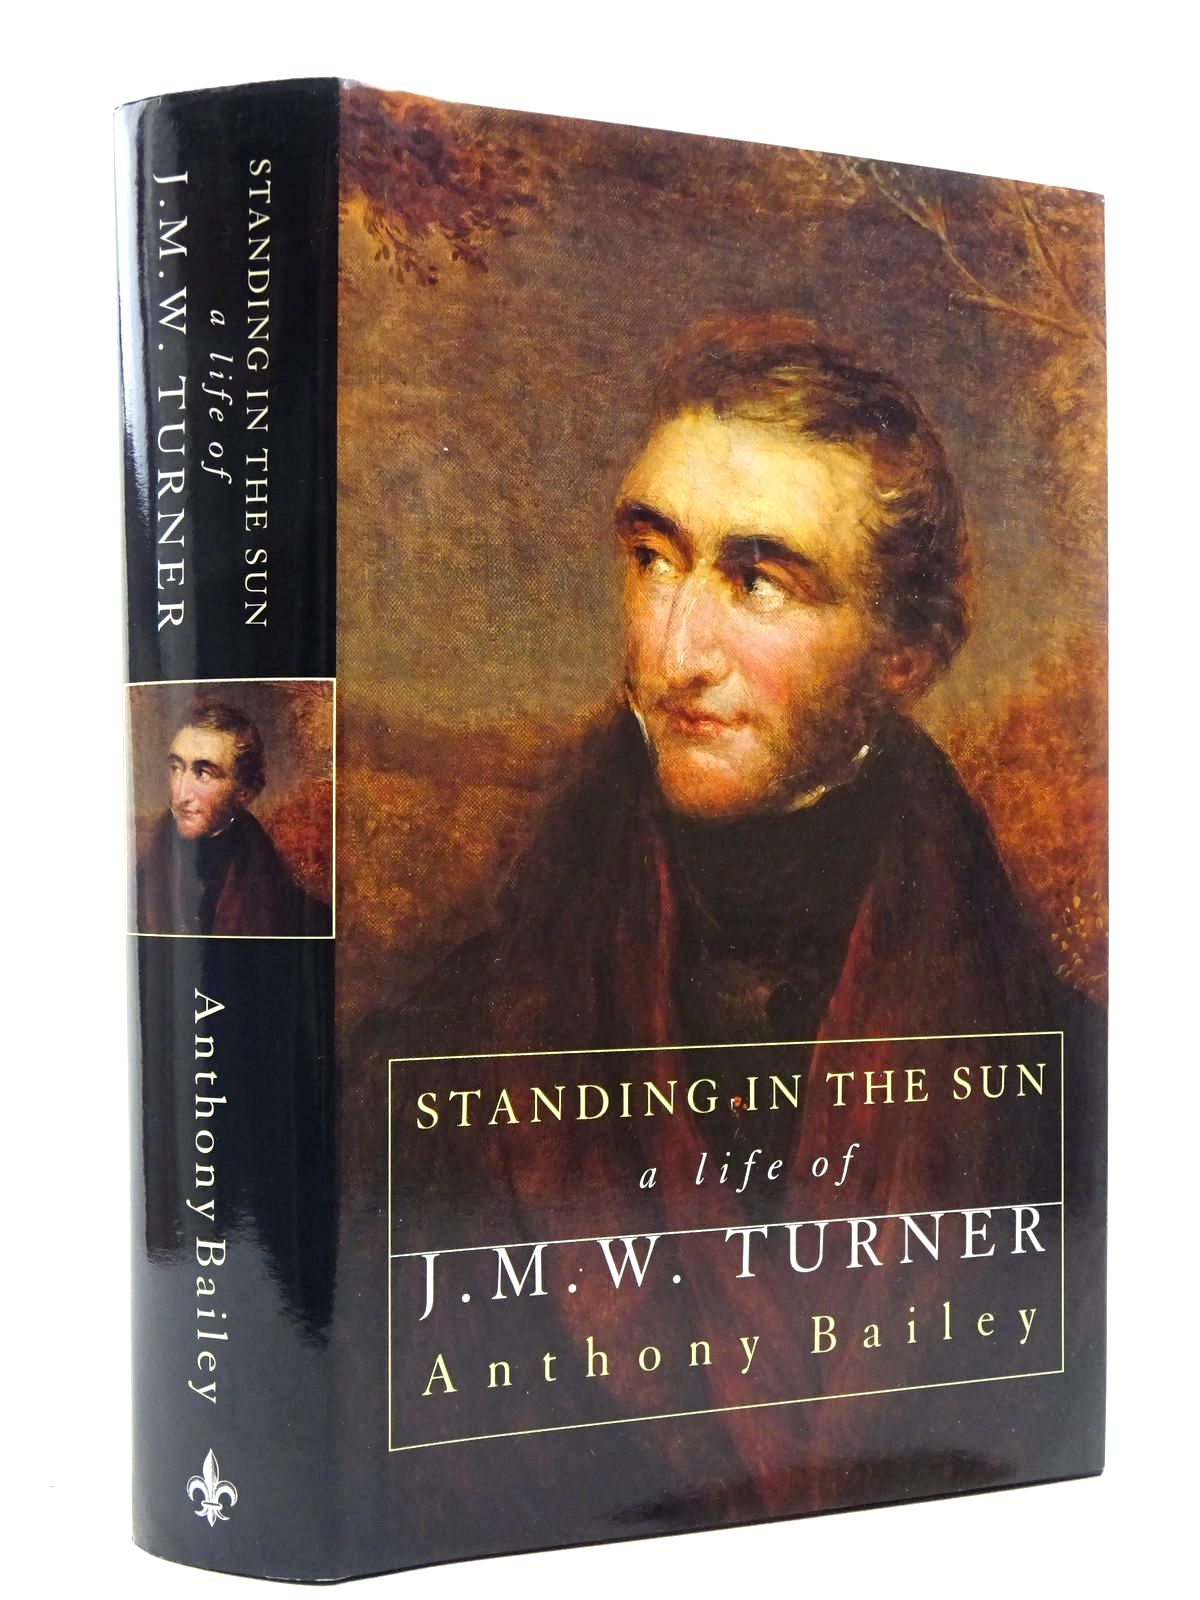 Photo of STANDING IN THE SUN A LIFE OF J.M.W. TURNER written by Bailey, Anthony published by Sinclair-Stevenson (STOCK CODE: 2128879)  for sale by Stella & Rose's Books